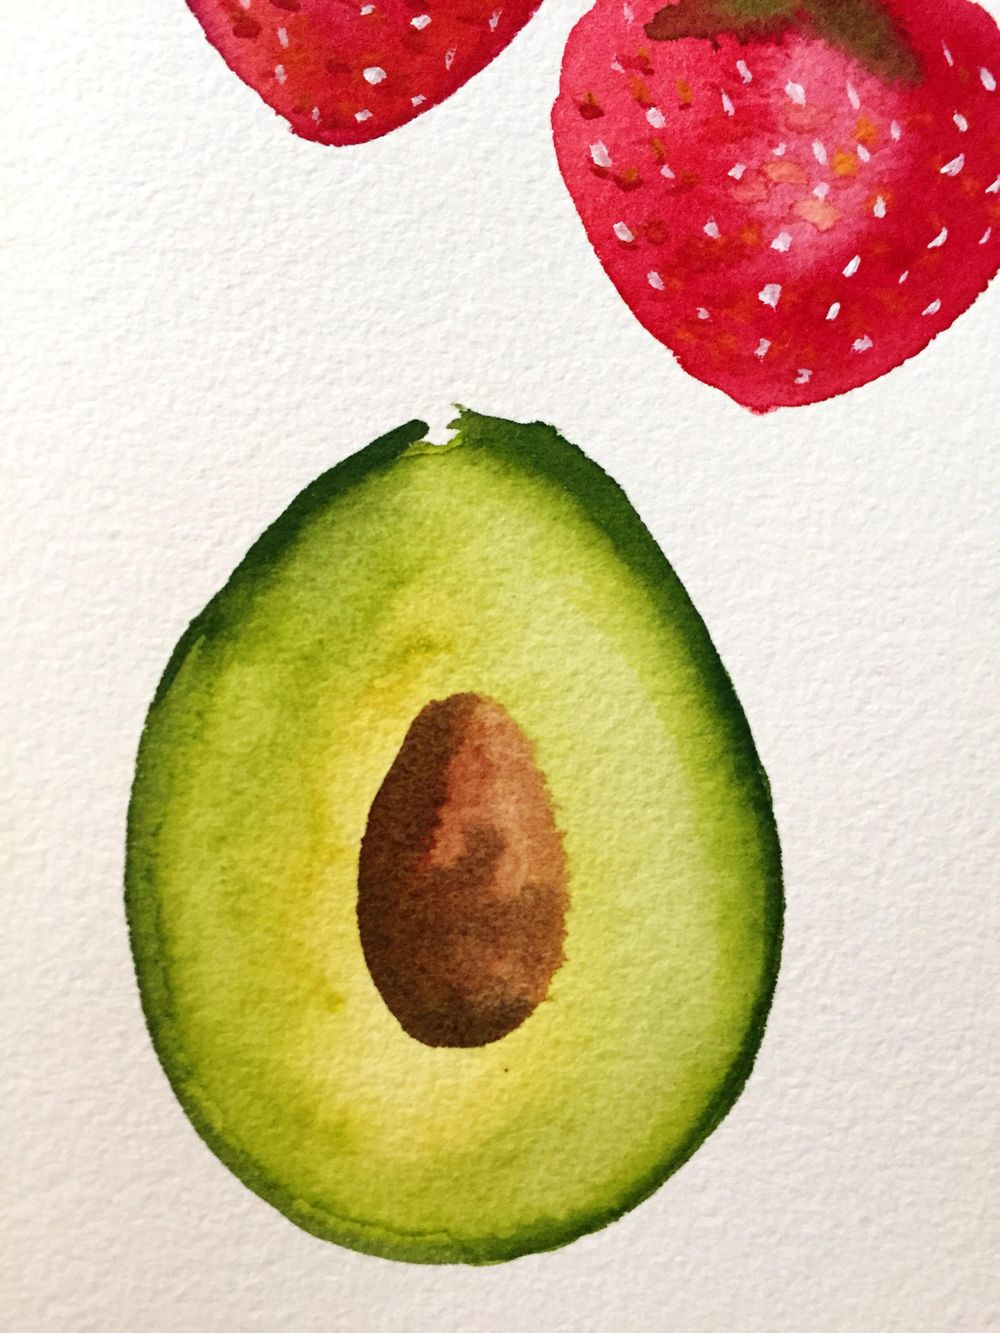 Loose watercolor fruits - image 1 - student project